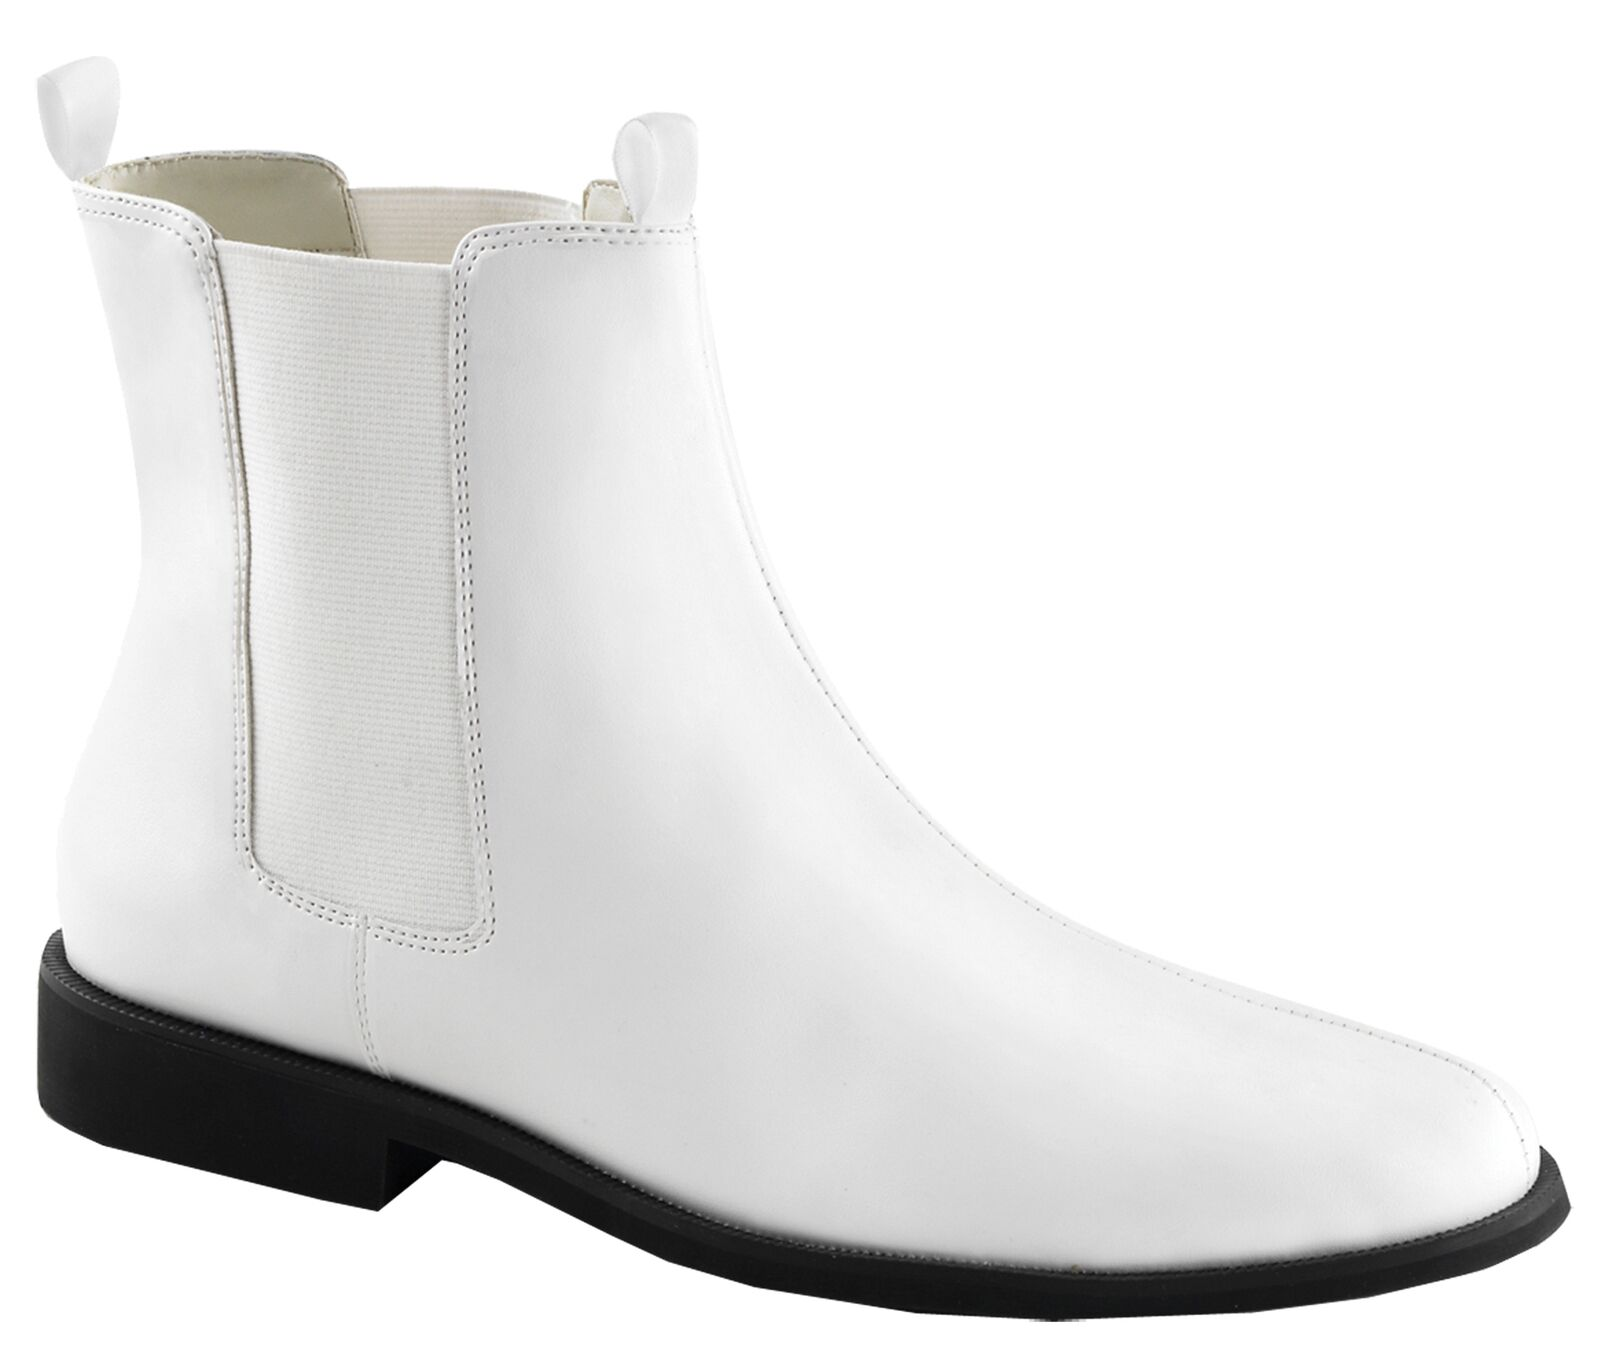 Stormtrooper Boots White Shoes Star